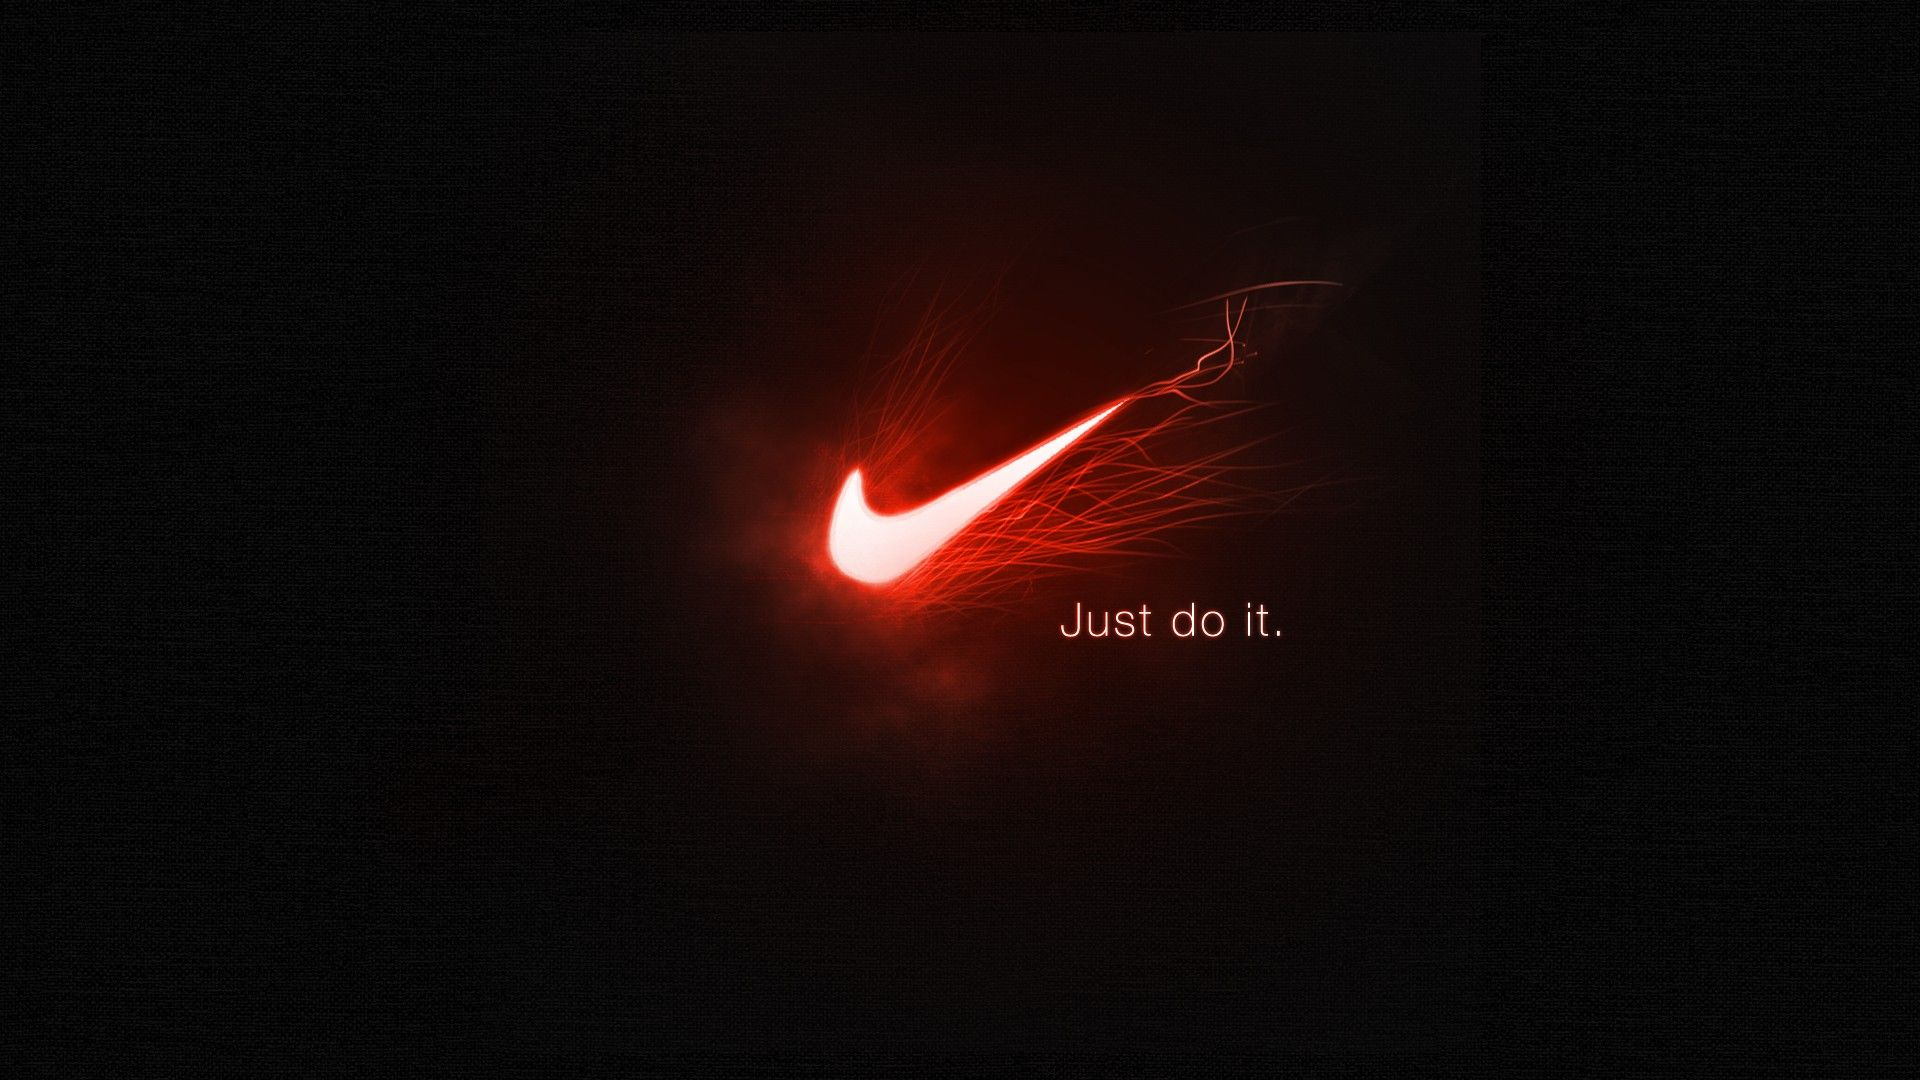 Just do it wallpaper hd wallpaper wallpaper just do it wallpaper hd free voltagebd Choice Image